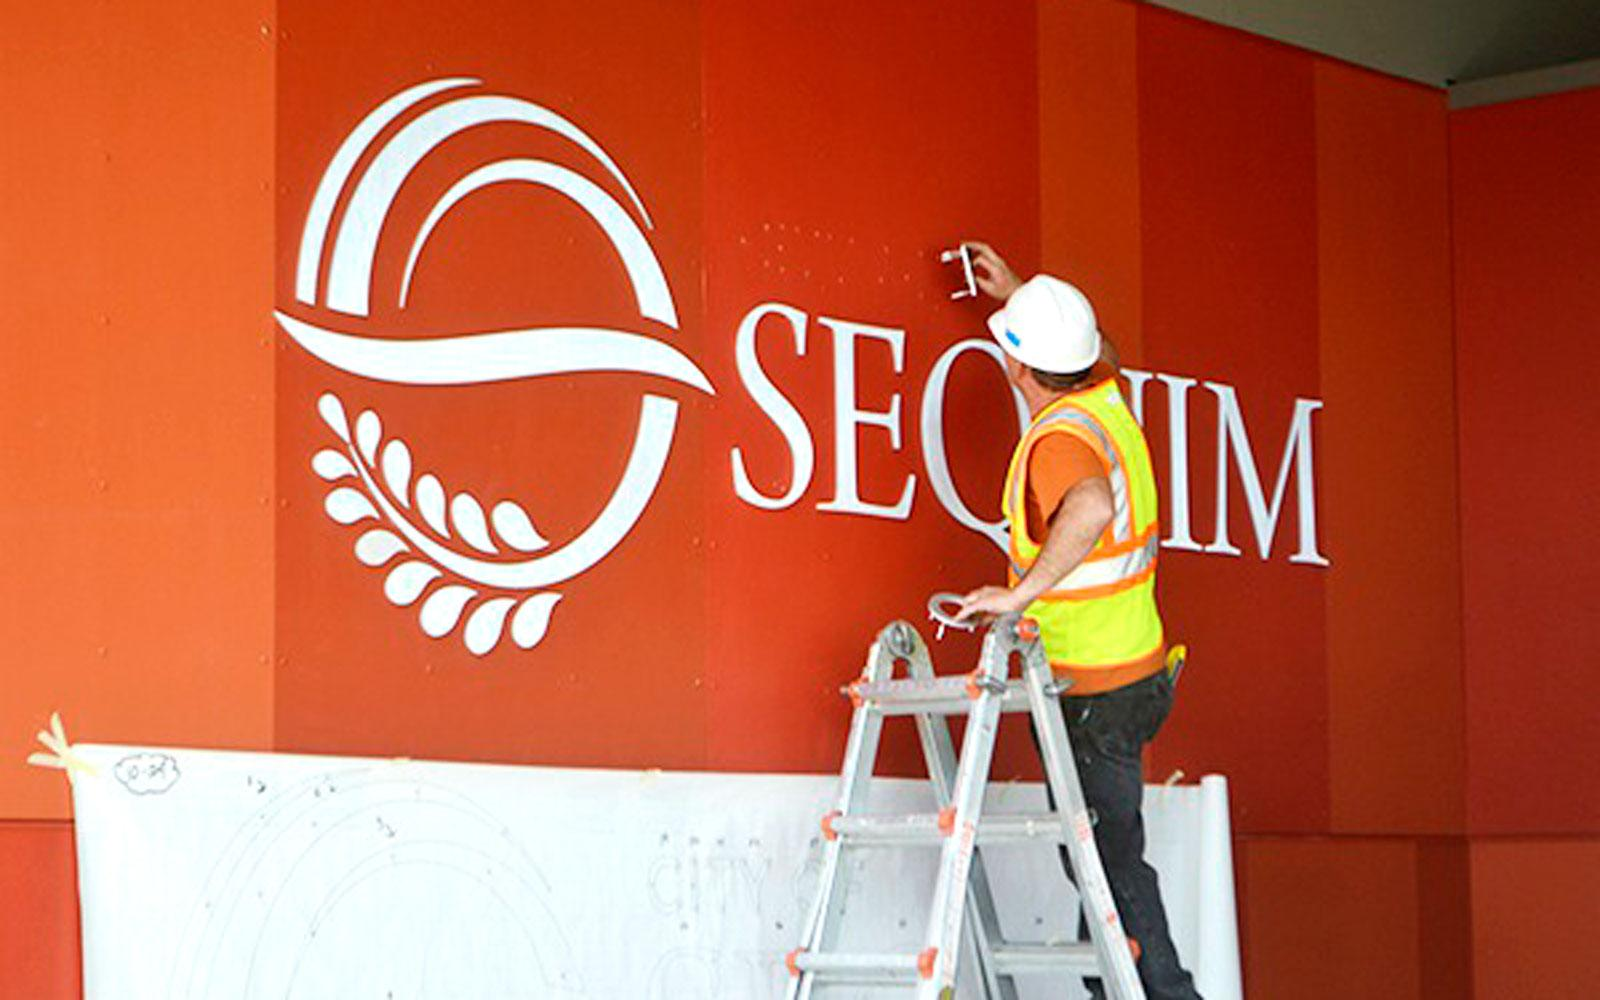 The installer works to make sure the lettering and logo emblem is lined up right right within the paint work and panels on this building installation.